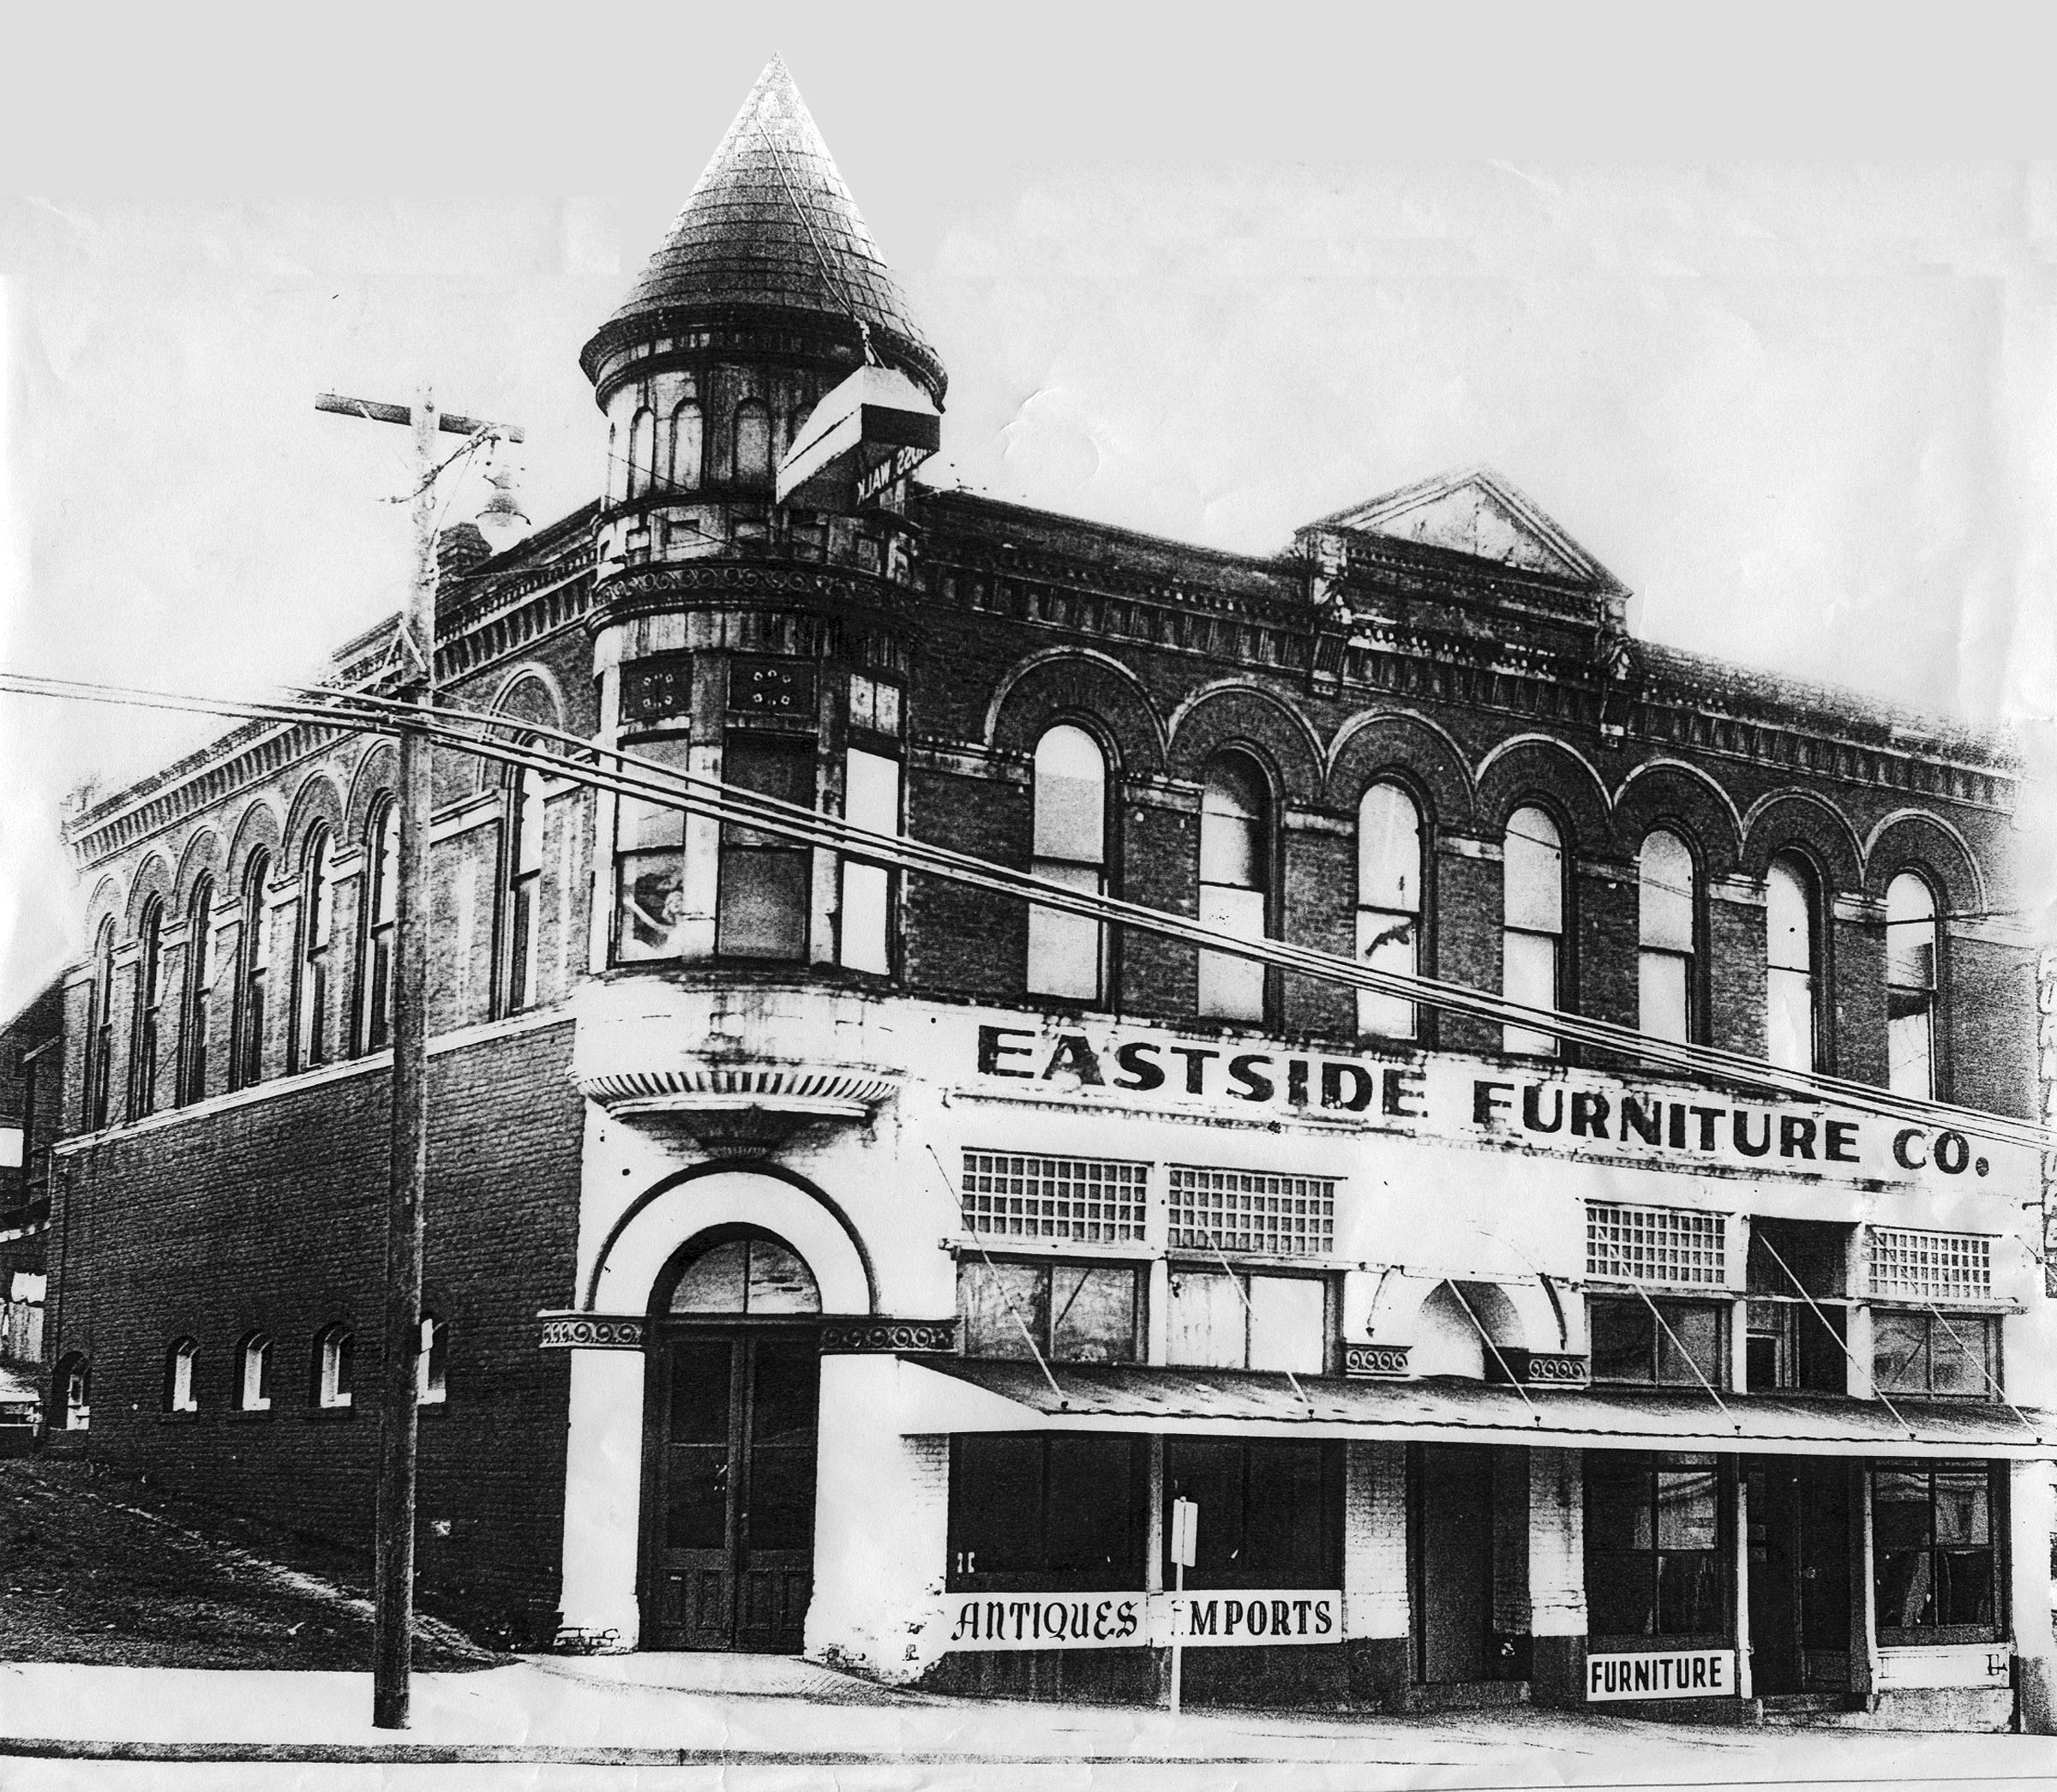 Historic Peter Kirk Building with Eastside Furniture Company sign